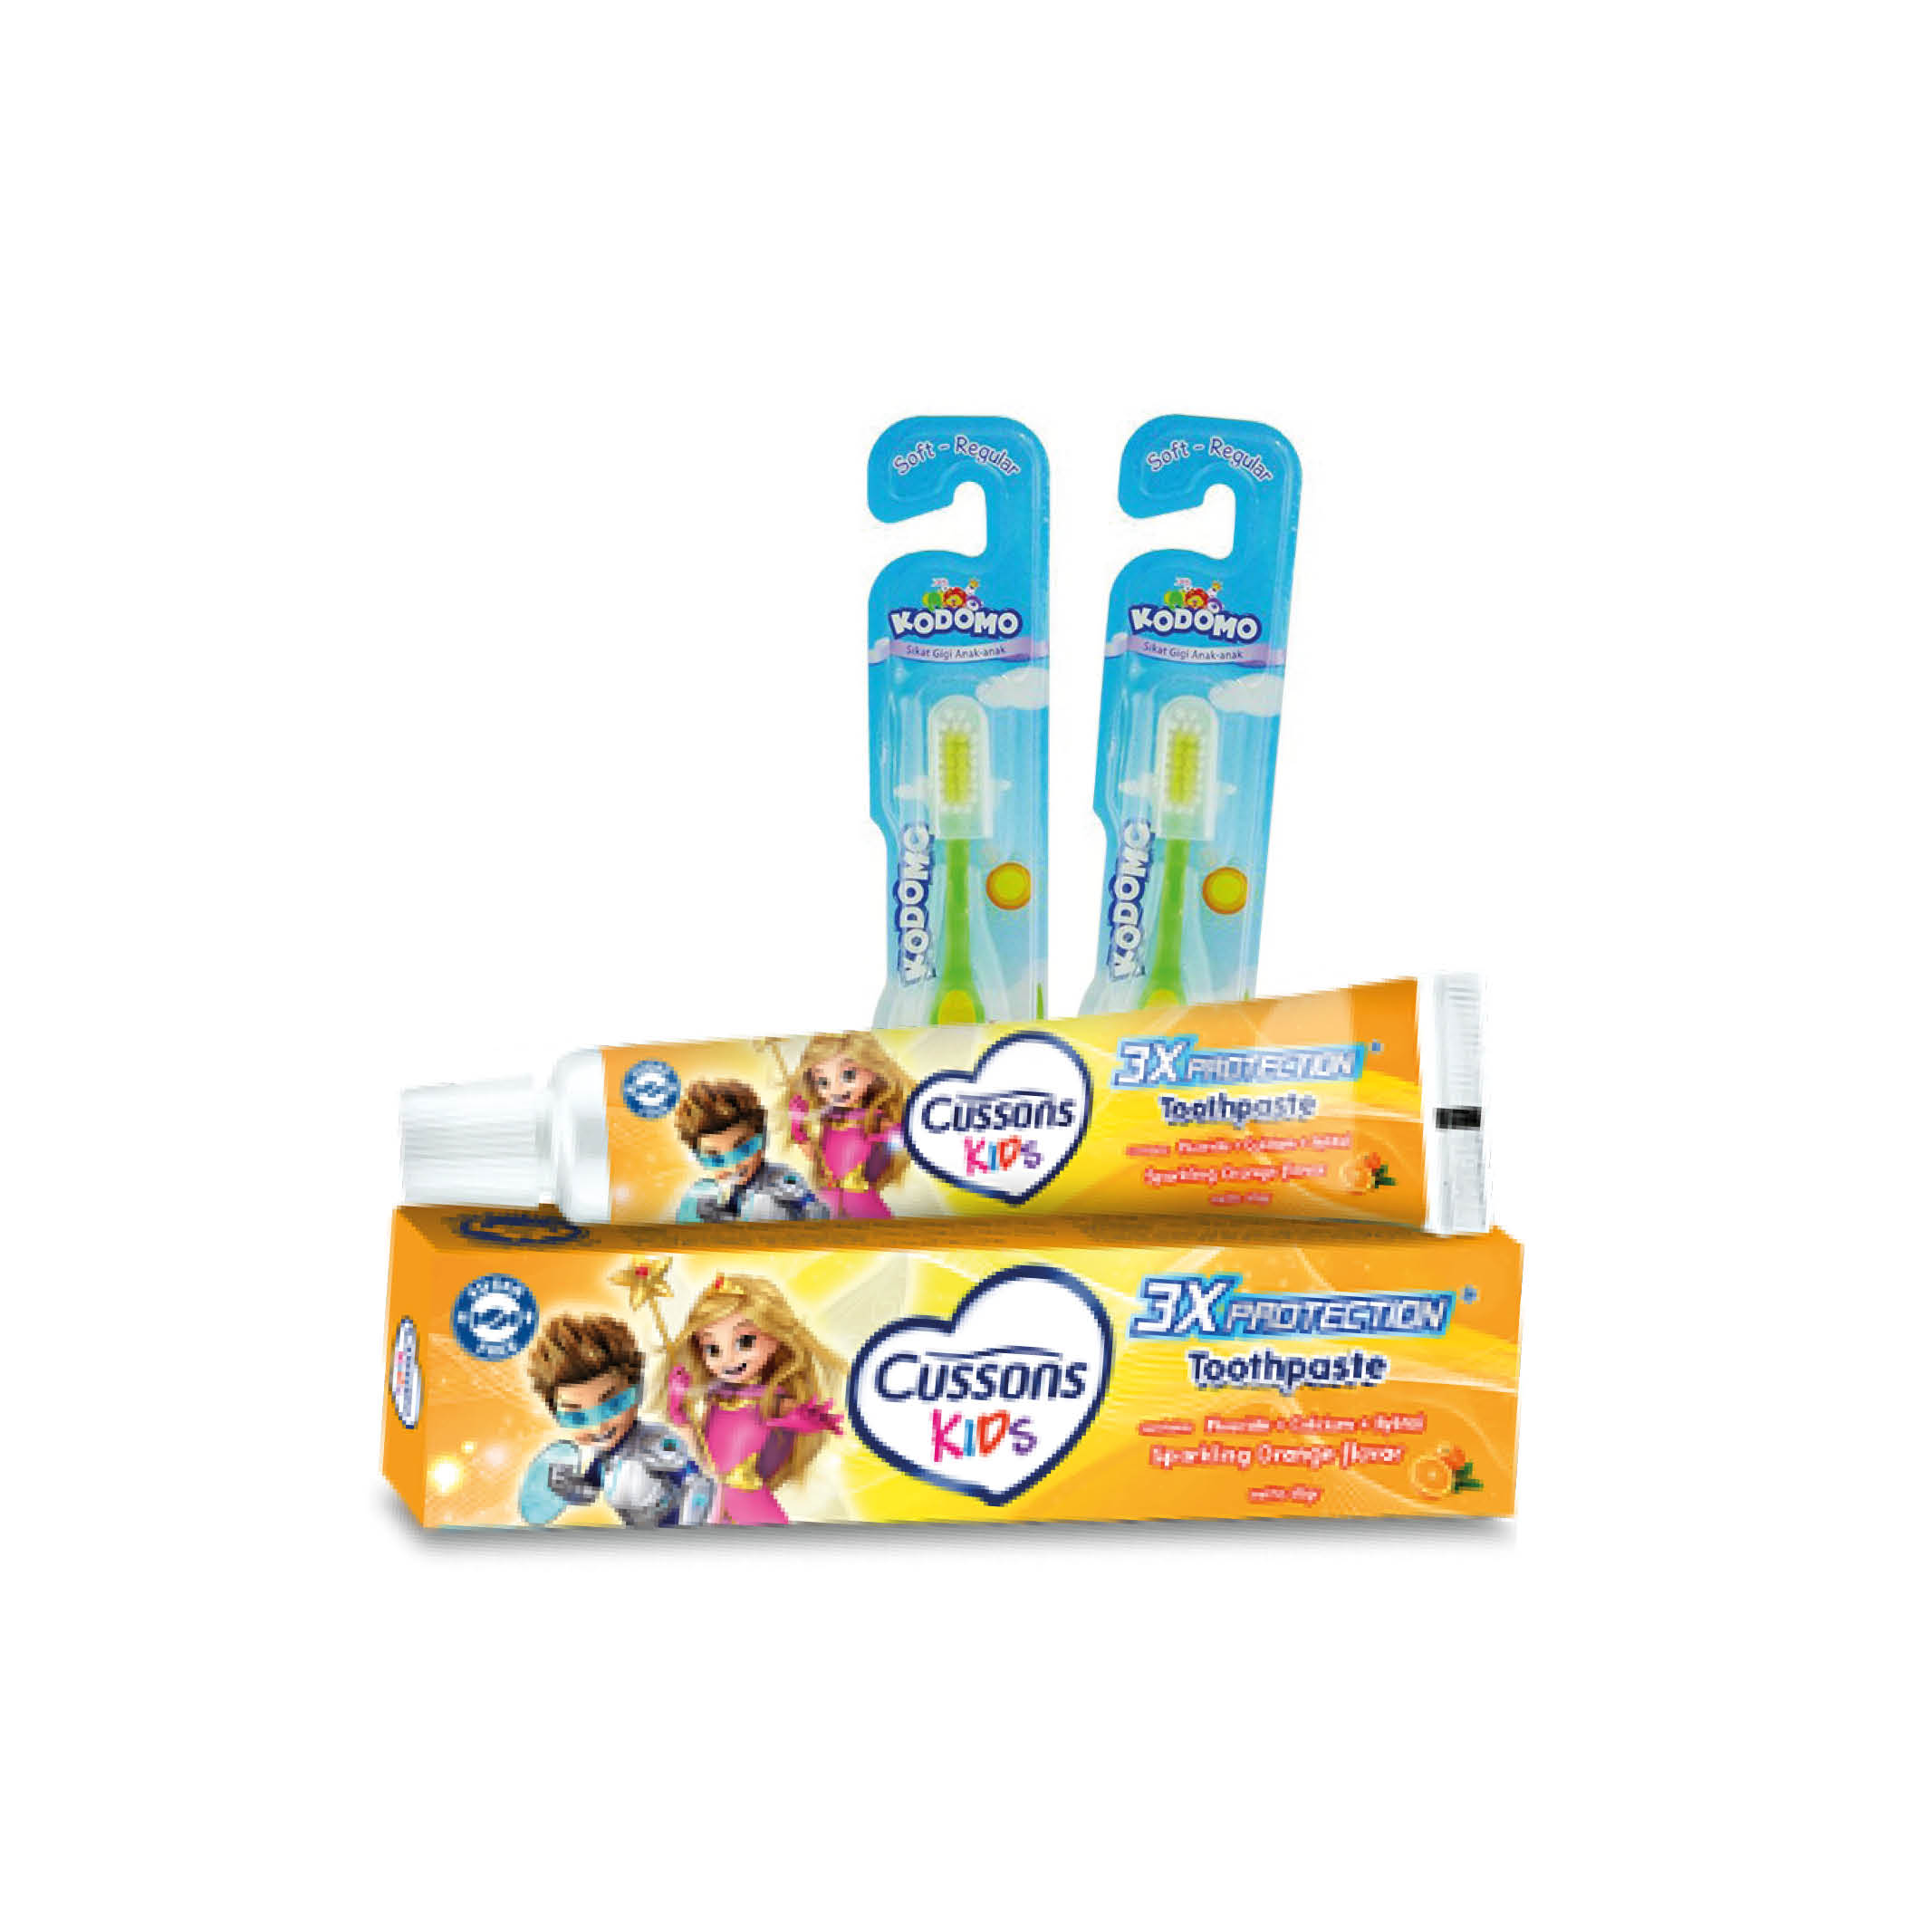 Baby and kid oral care